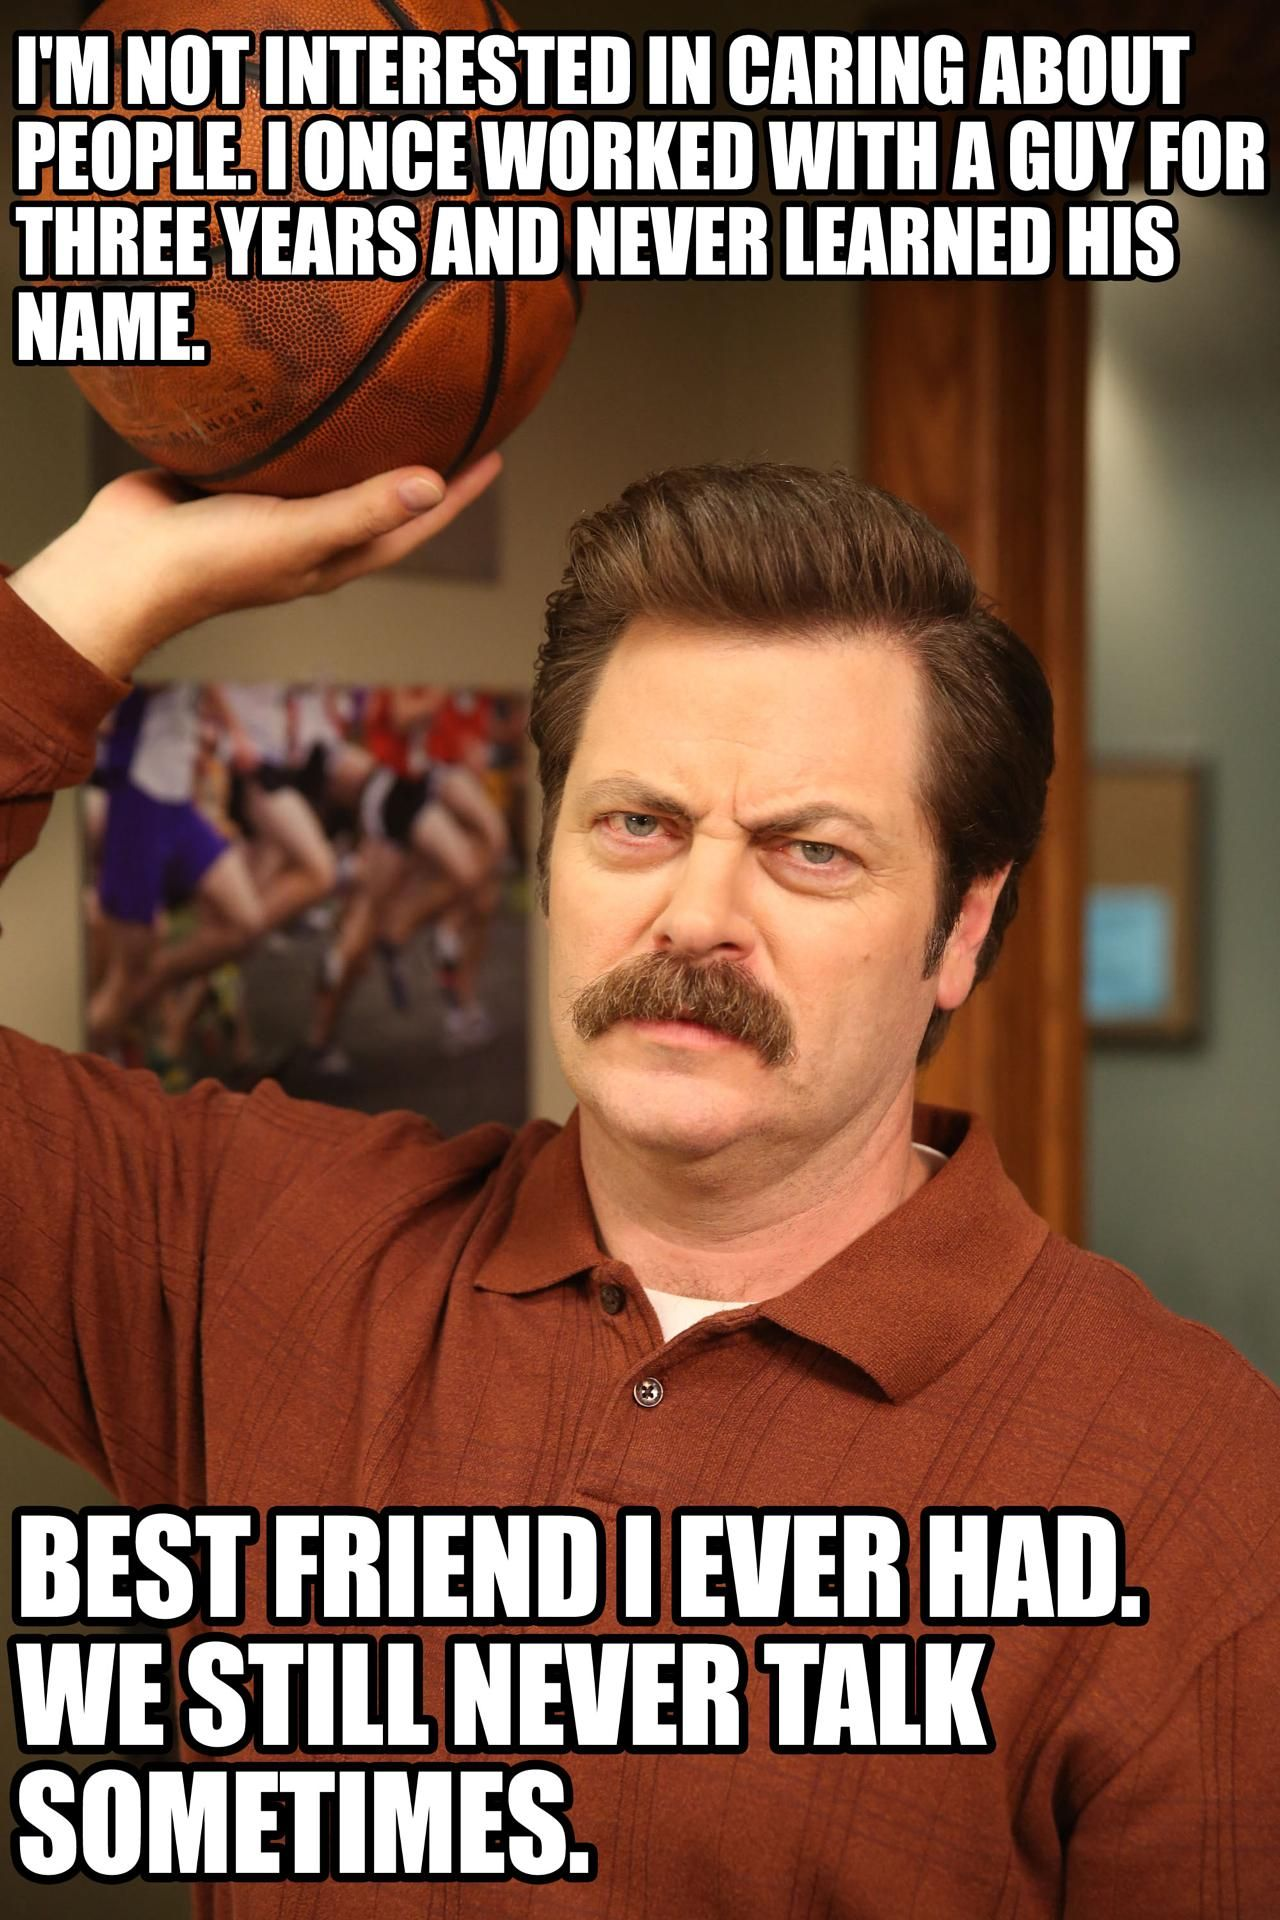 Ron Swanson Quotes Parks and Rec: 12 best Ron Swanson quotes | Parks and Rec | Ron  Ron Swanson Quotes